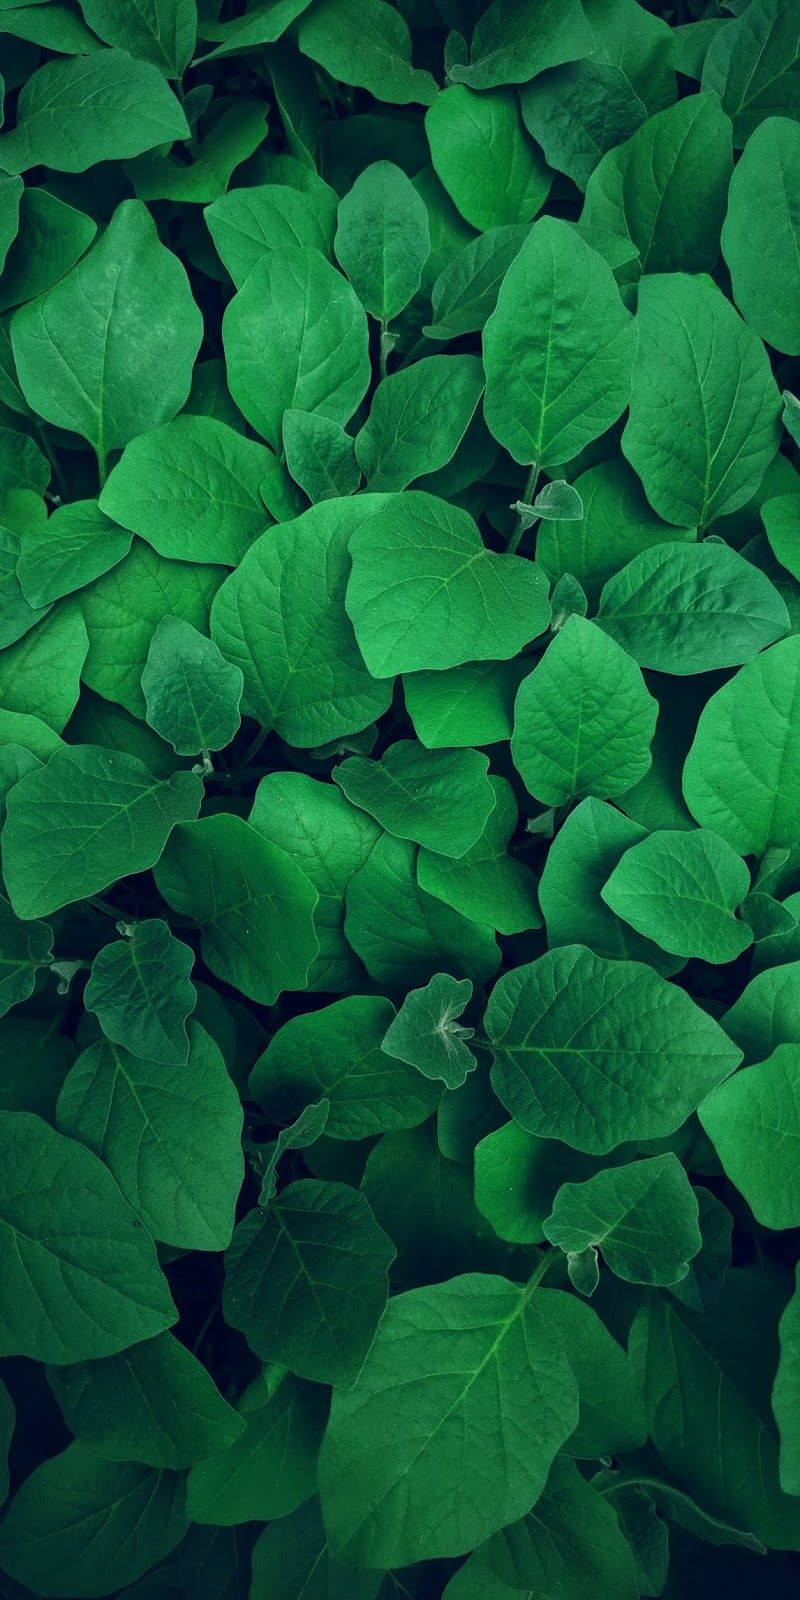 Leafs Wallpaper Iphone Android Green Pictures Green Aesthetic Dark Green Plants